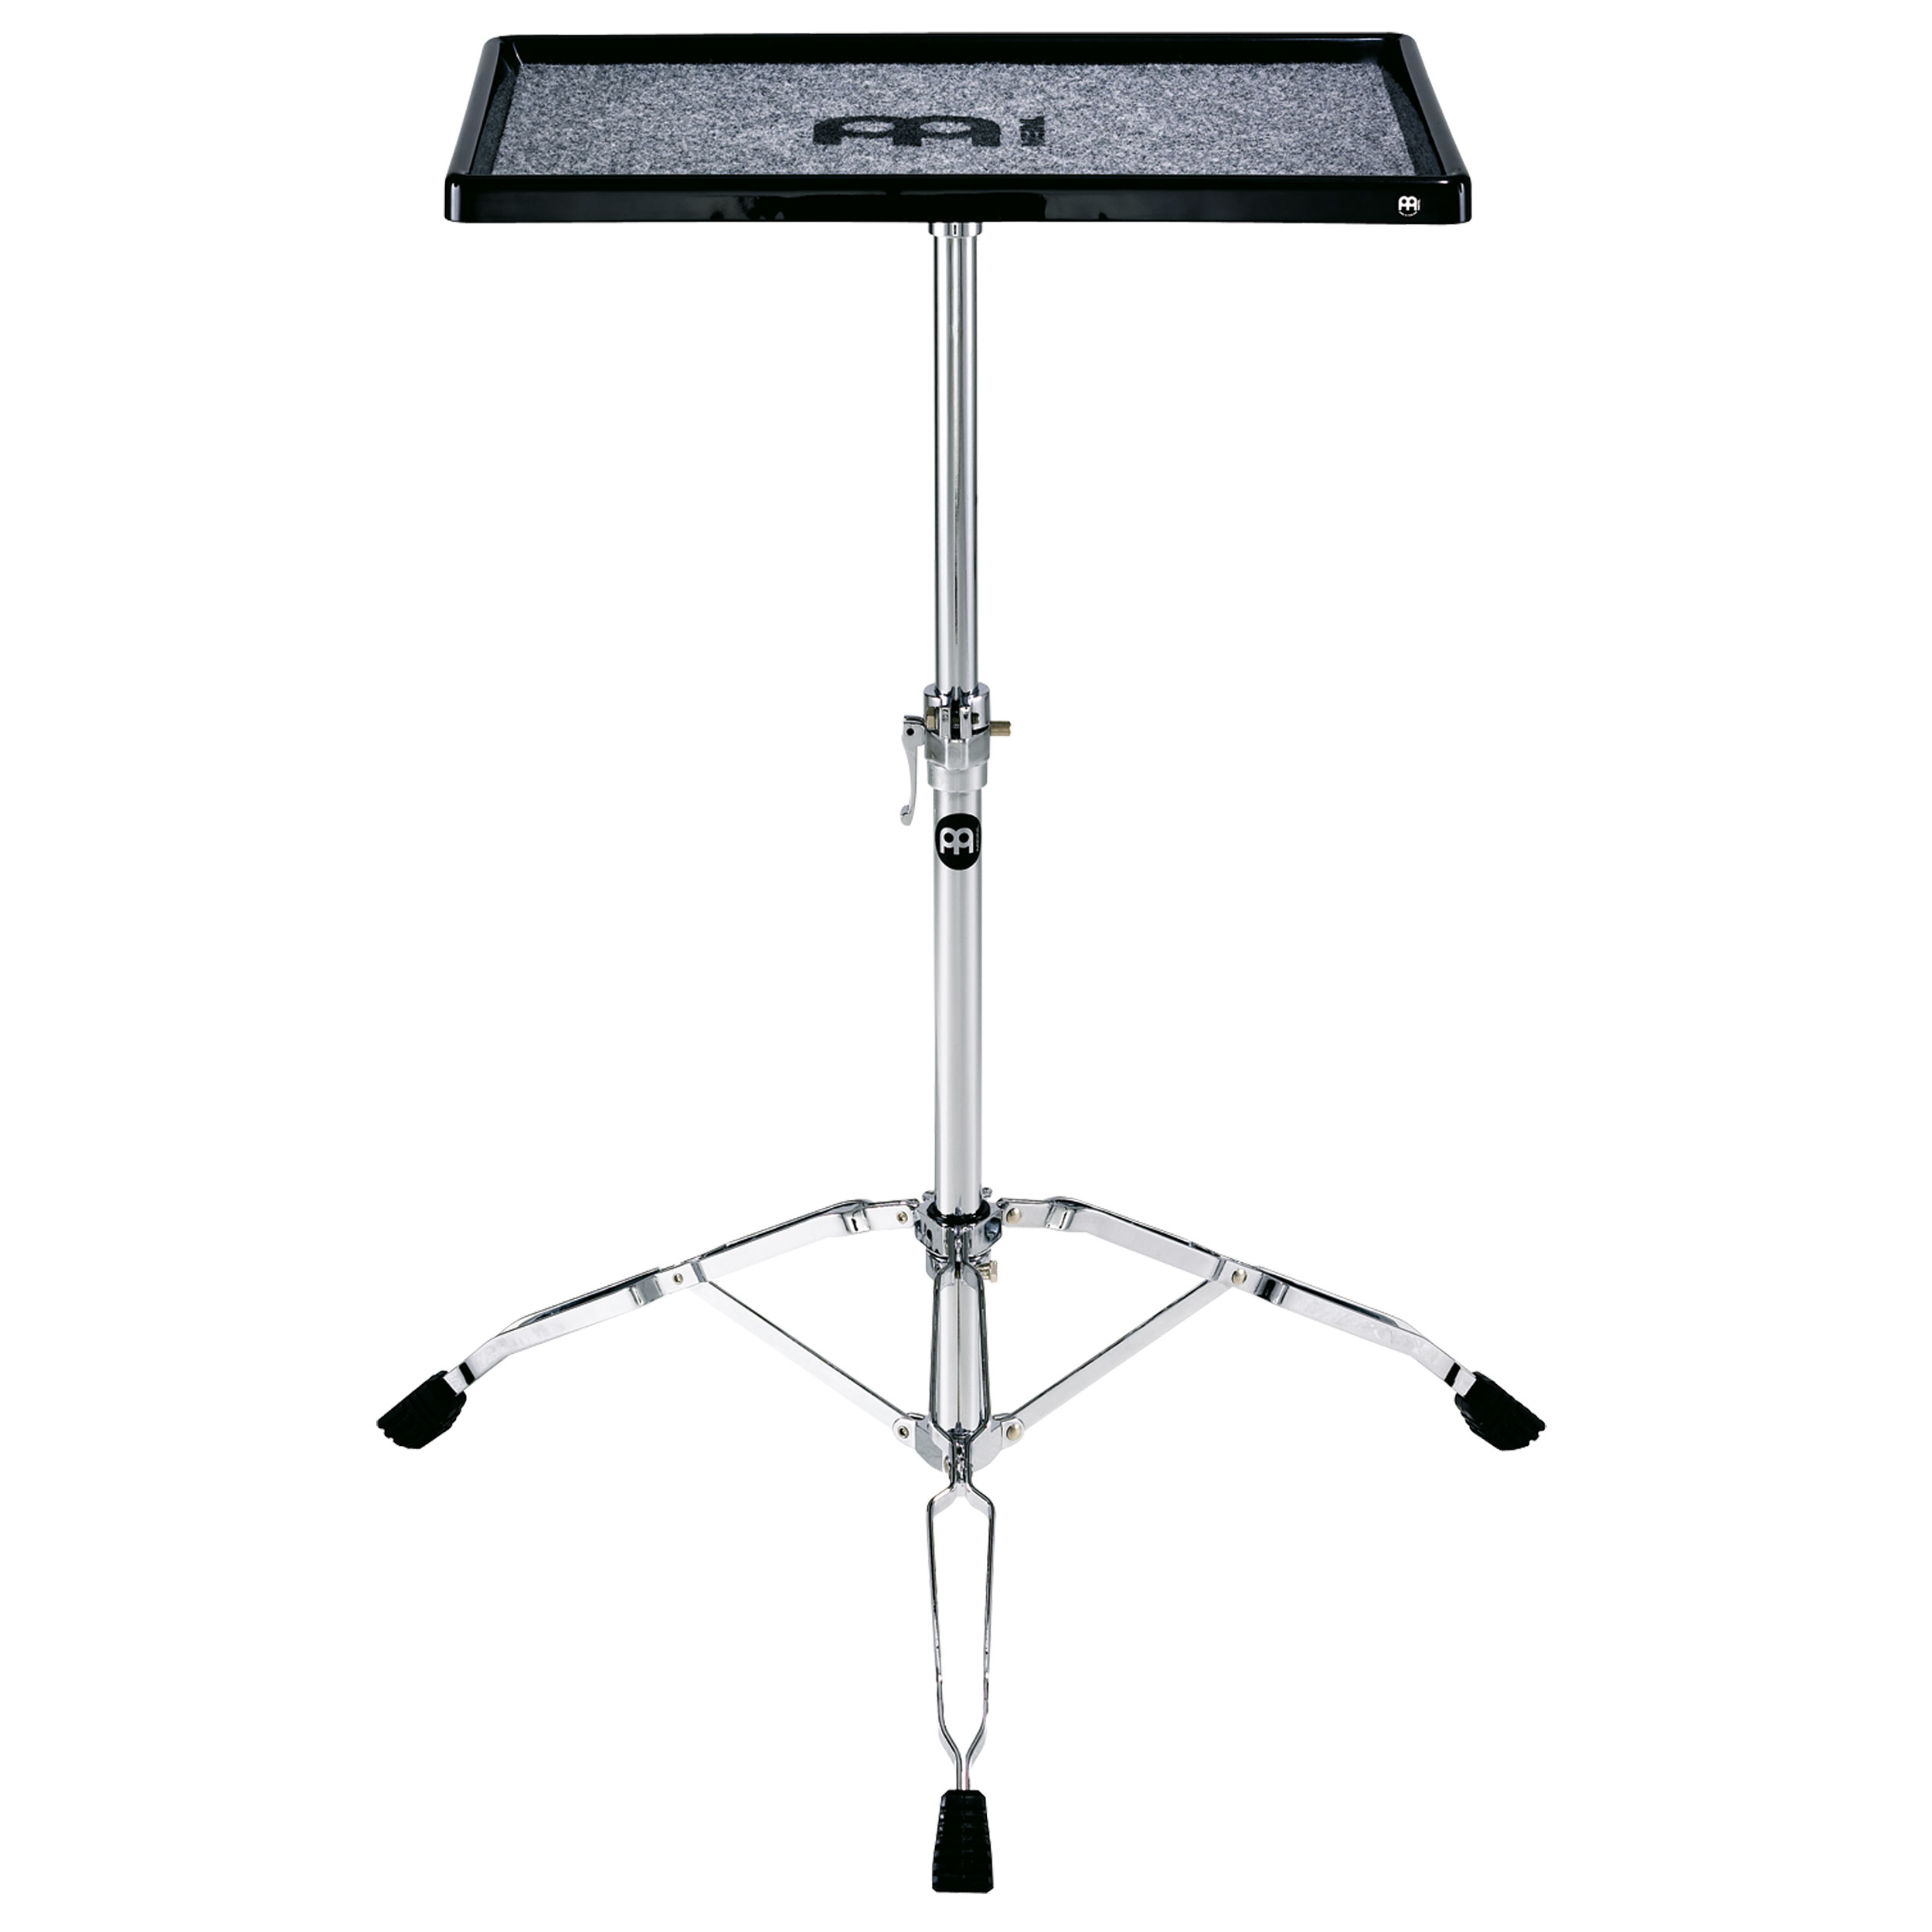 Meinl Percussion Table Stand Percussion Table Stand